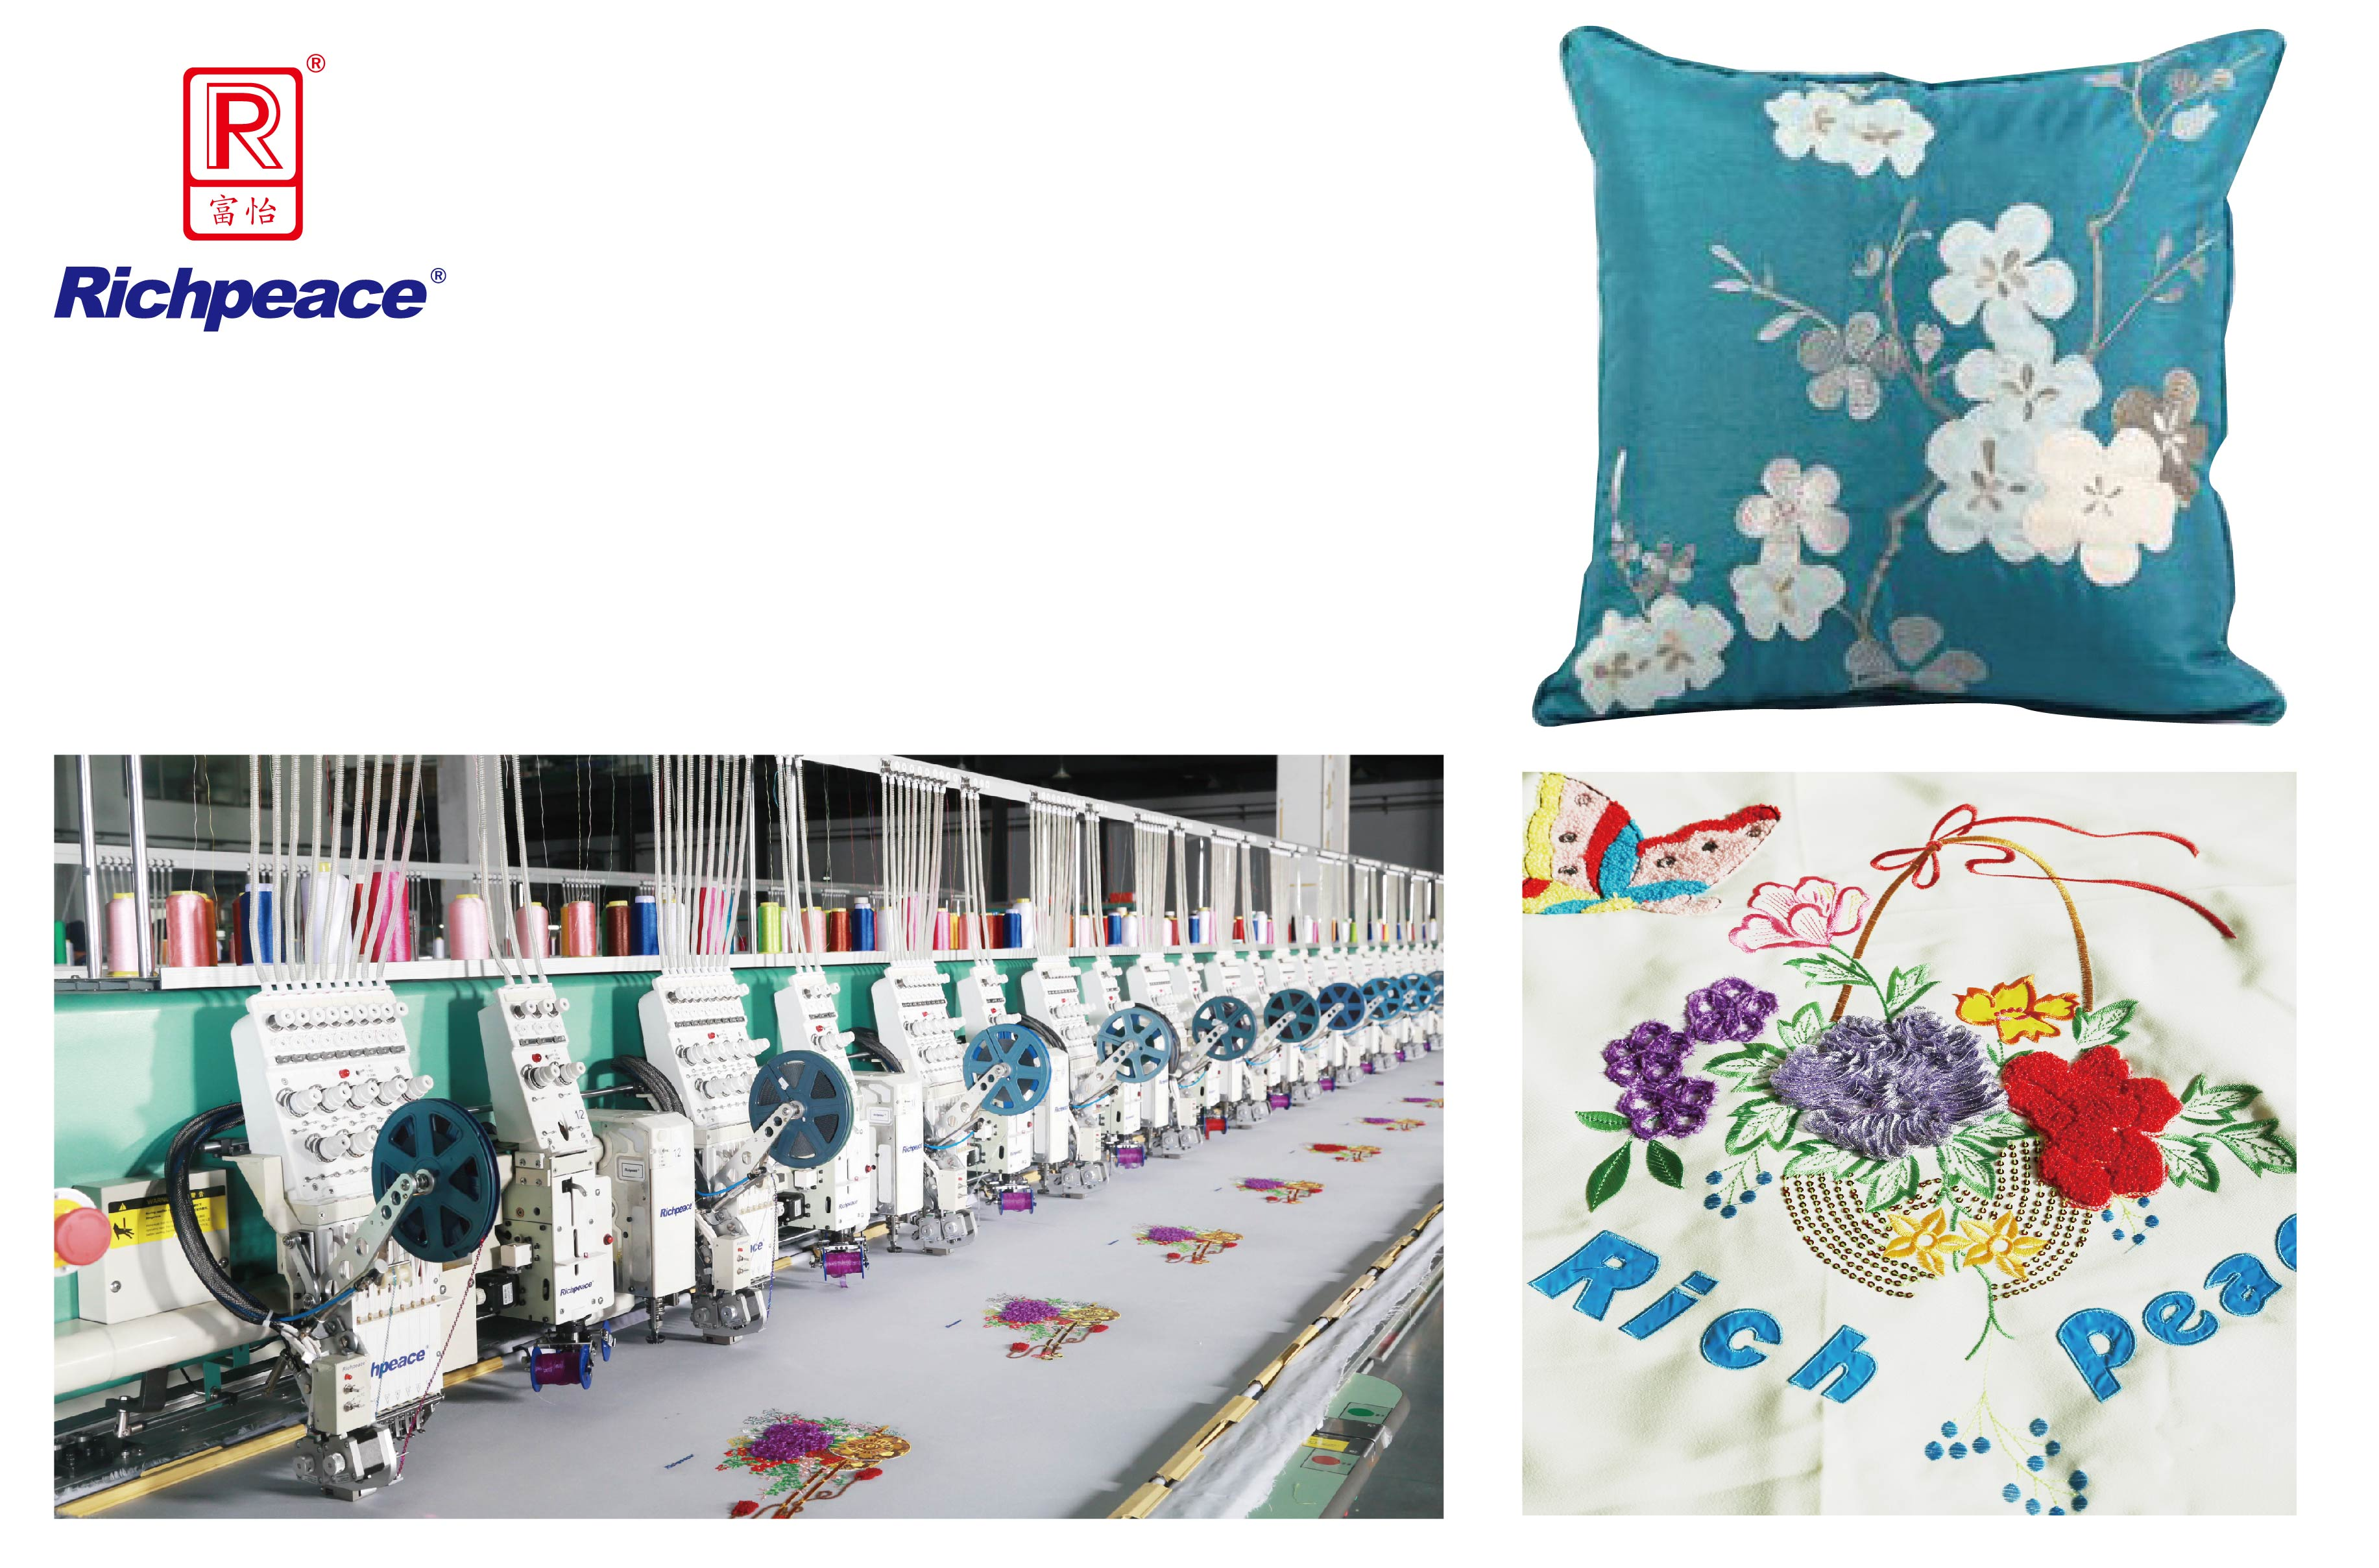 Richpeace Computerized Five-in-one Embroidery Machine